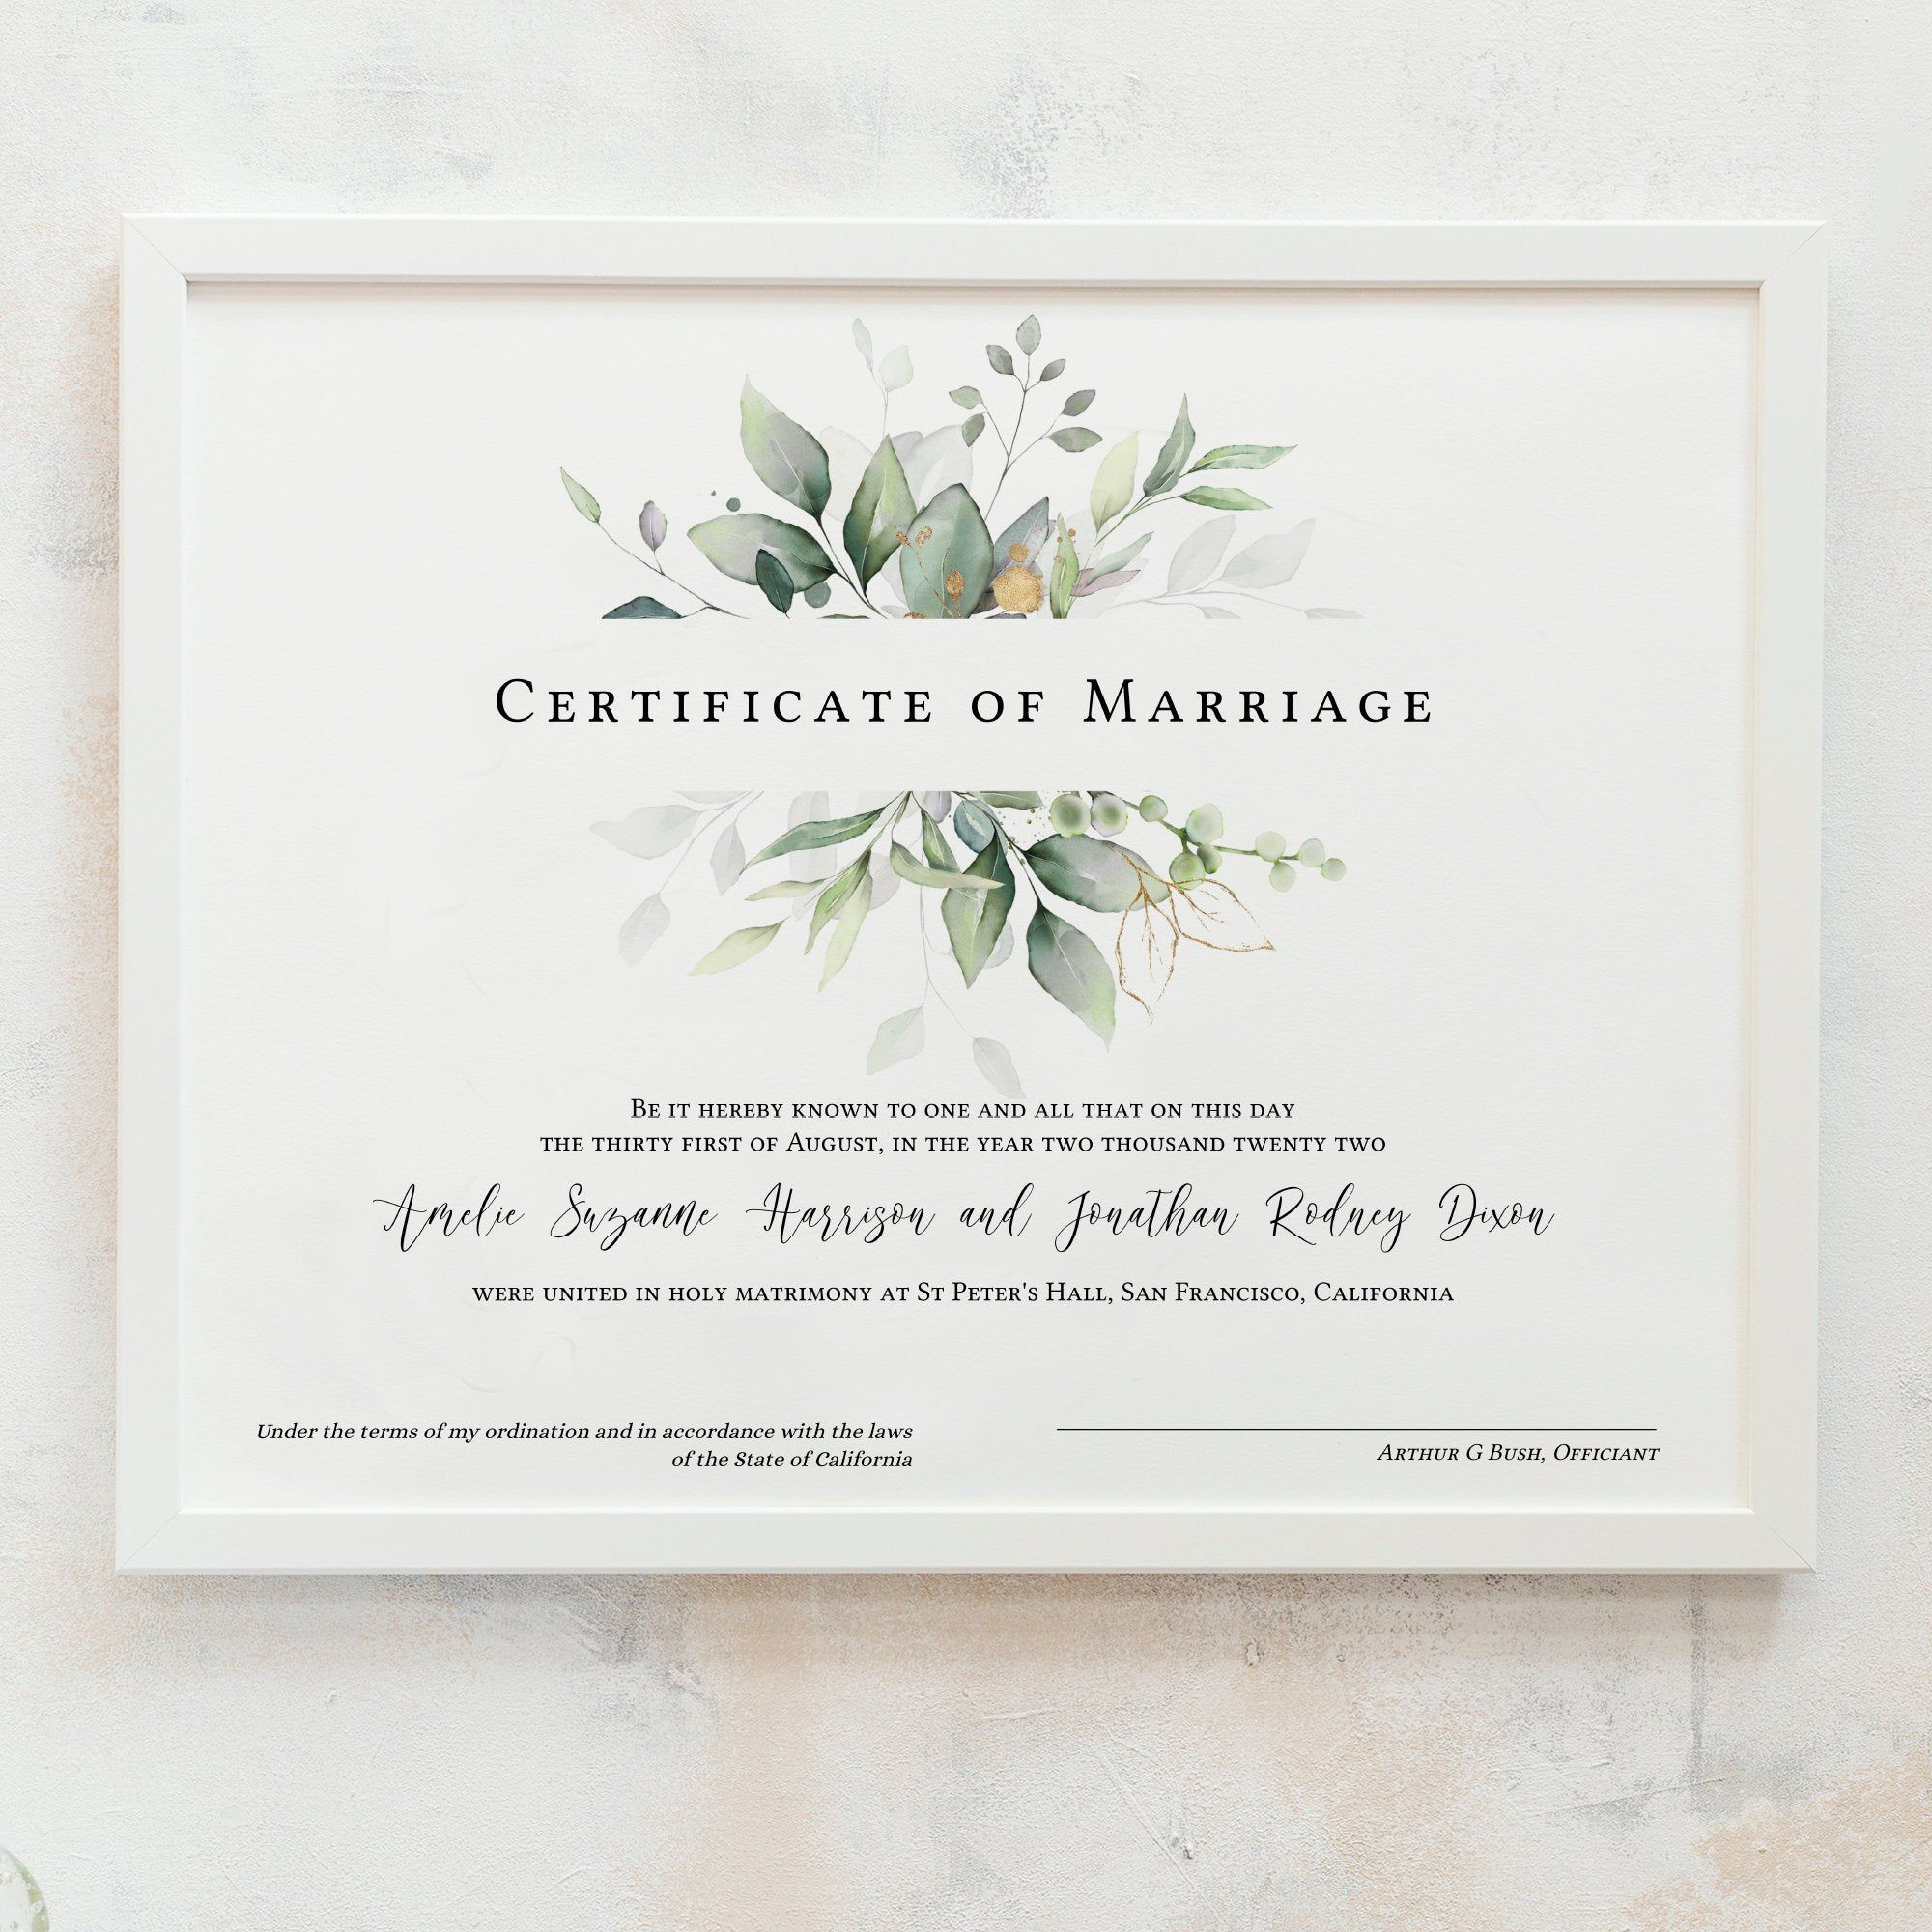 009 Rare Free Marriage Certificate Template High Def  Renewal Translation From Spanish To English Wedding DownloadFull